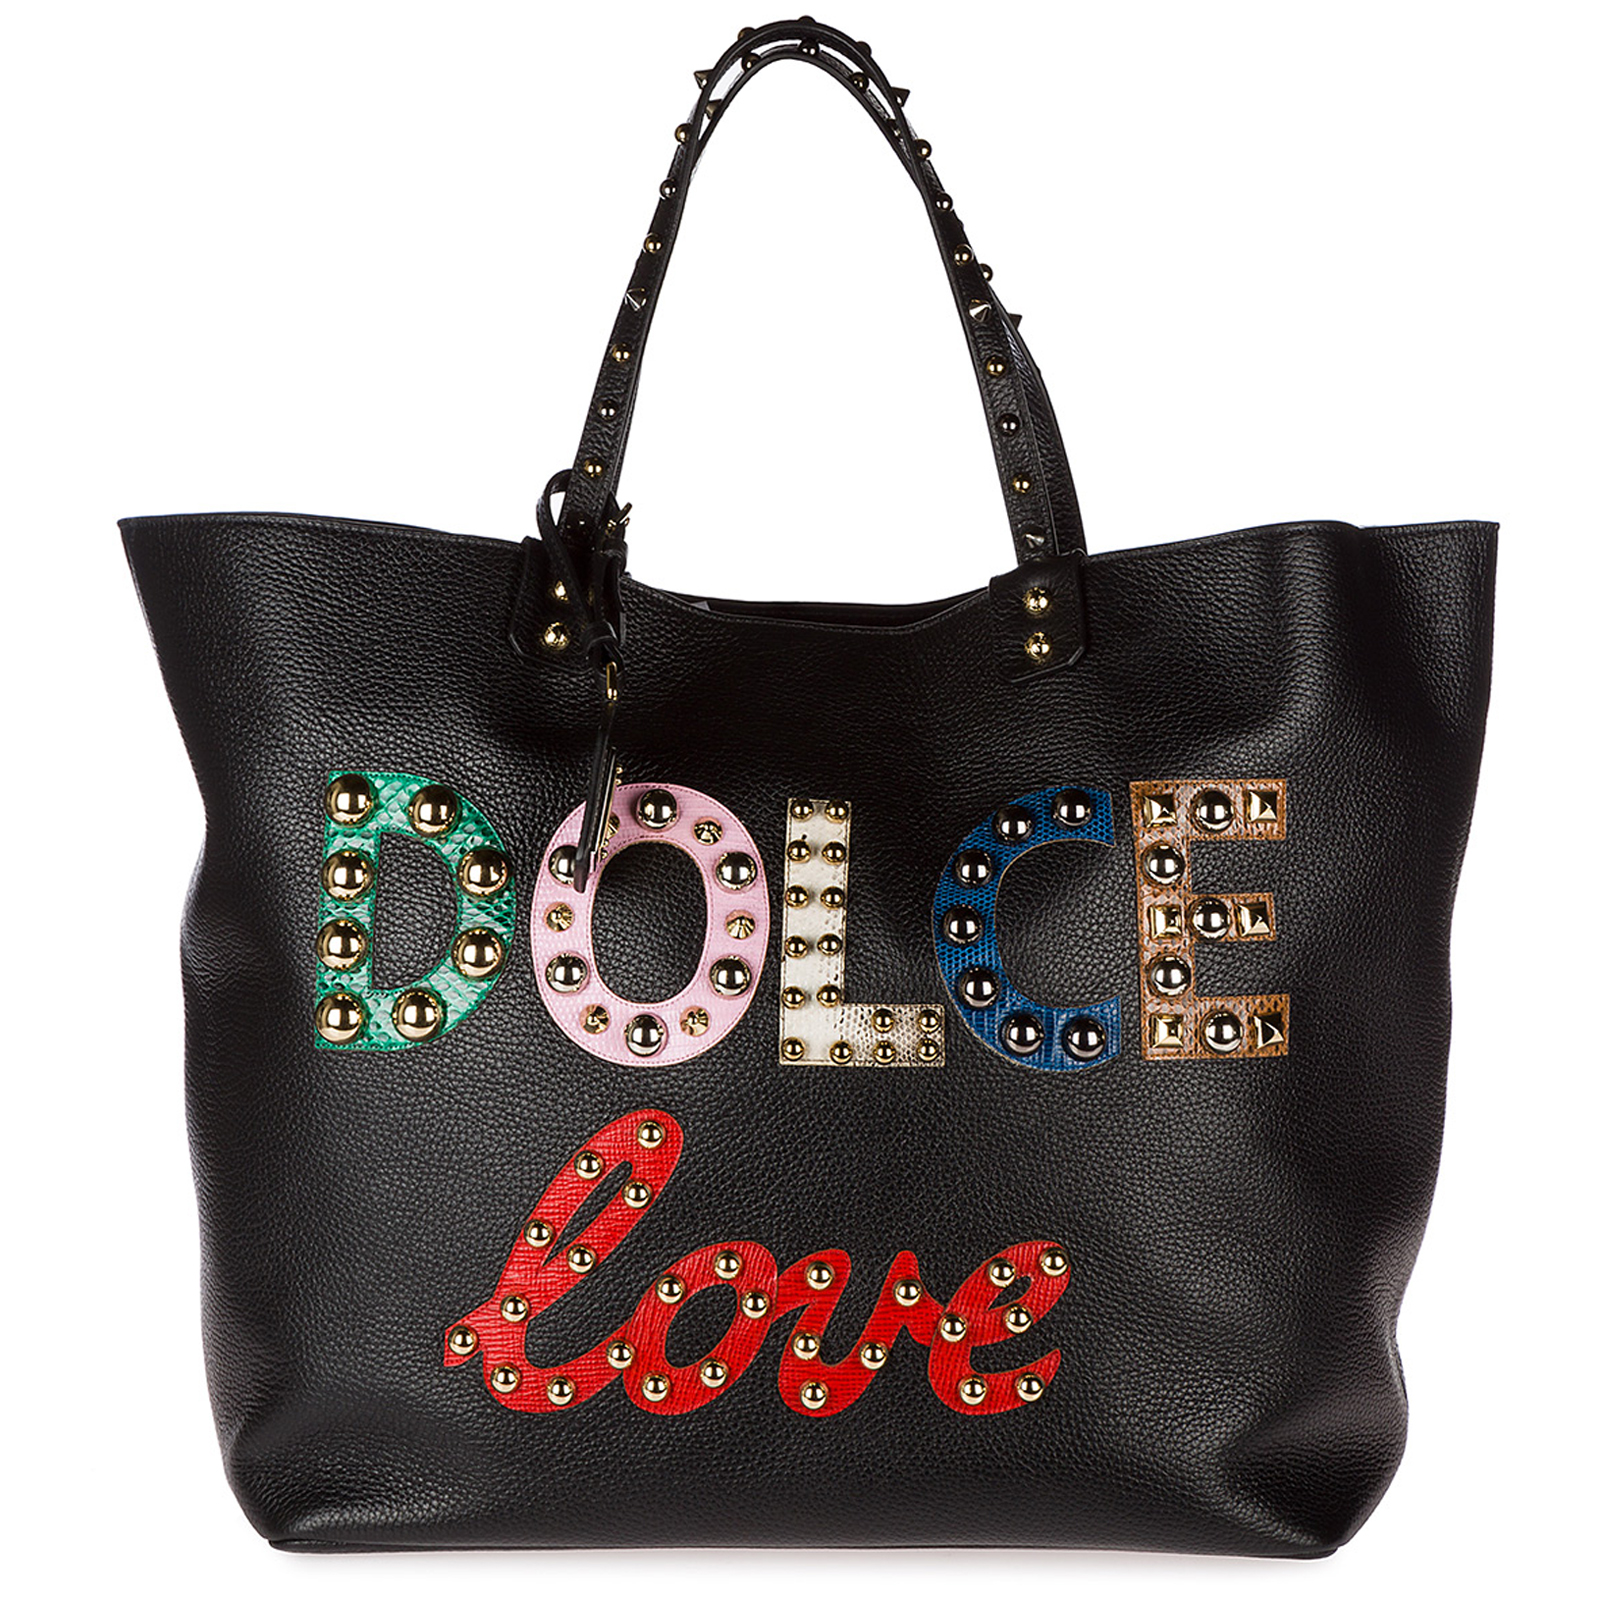 Borsa donna a mano shopping in pelle beatrice